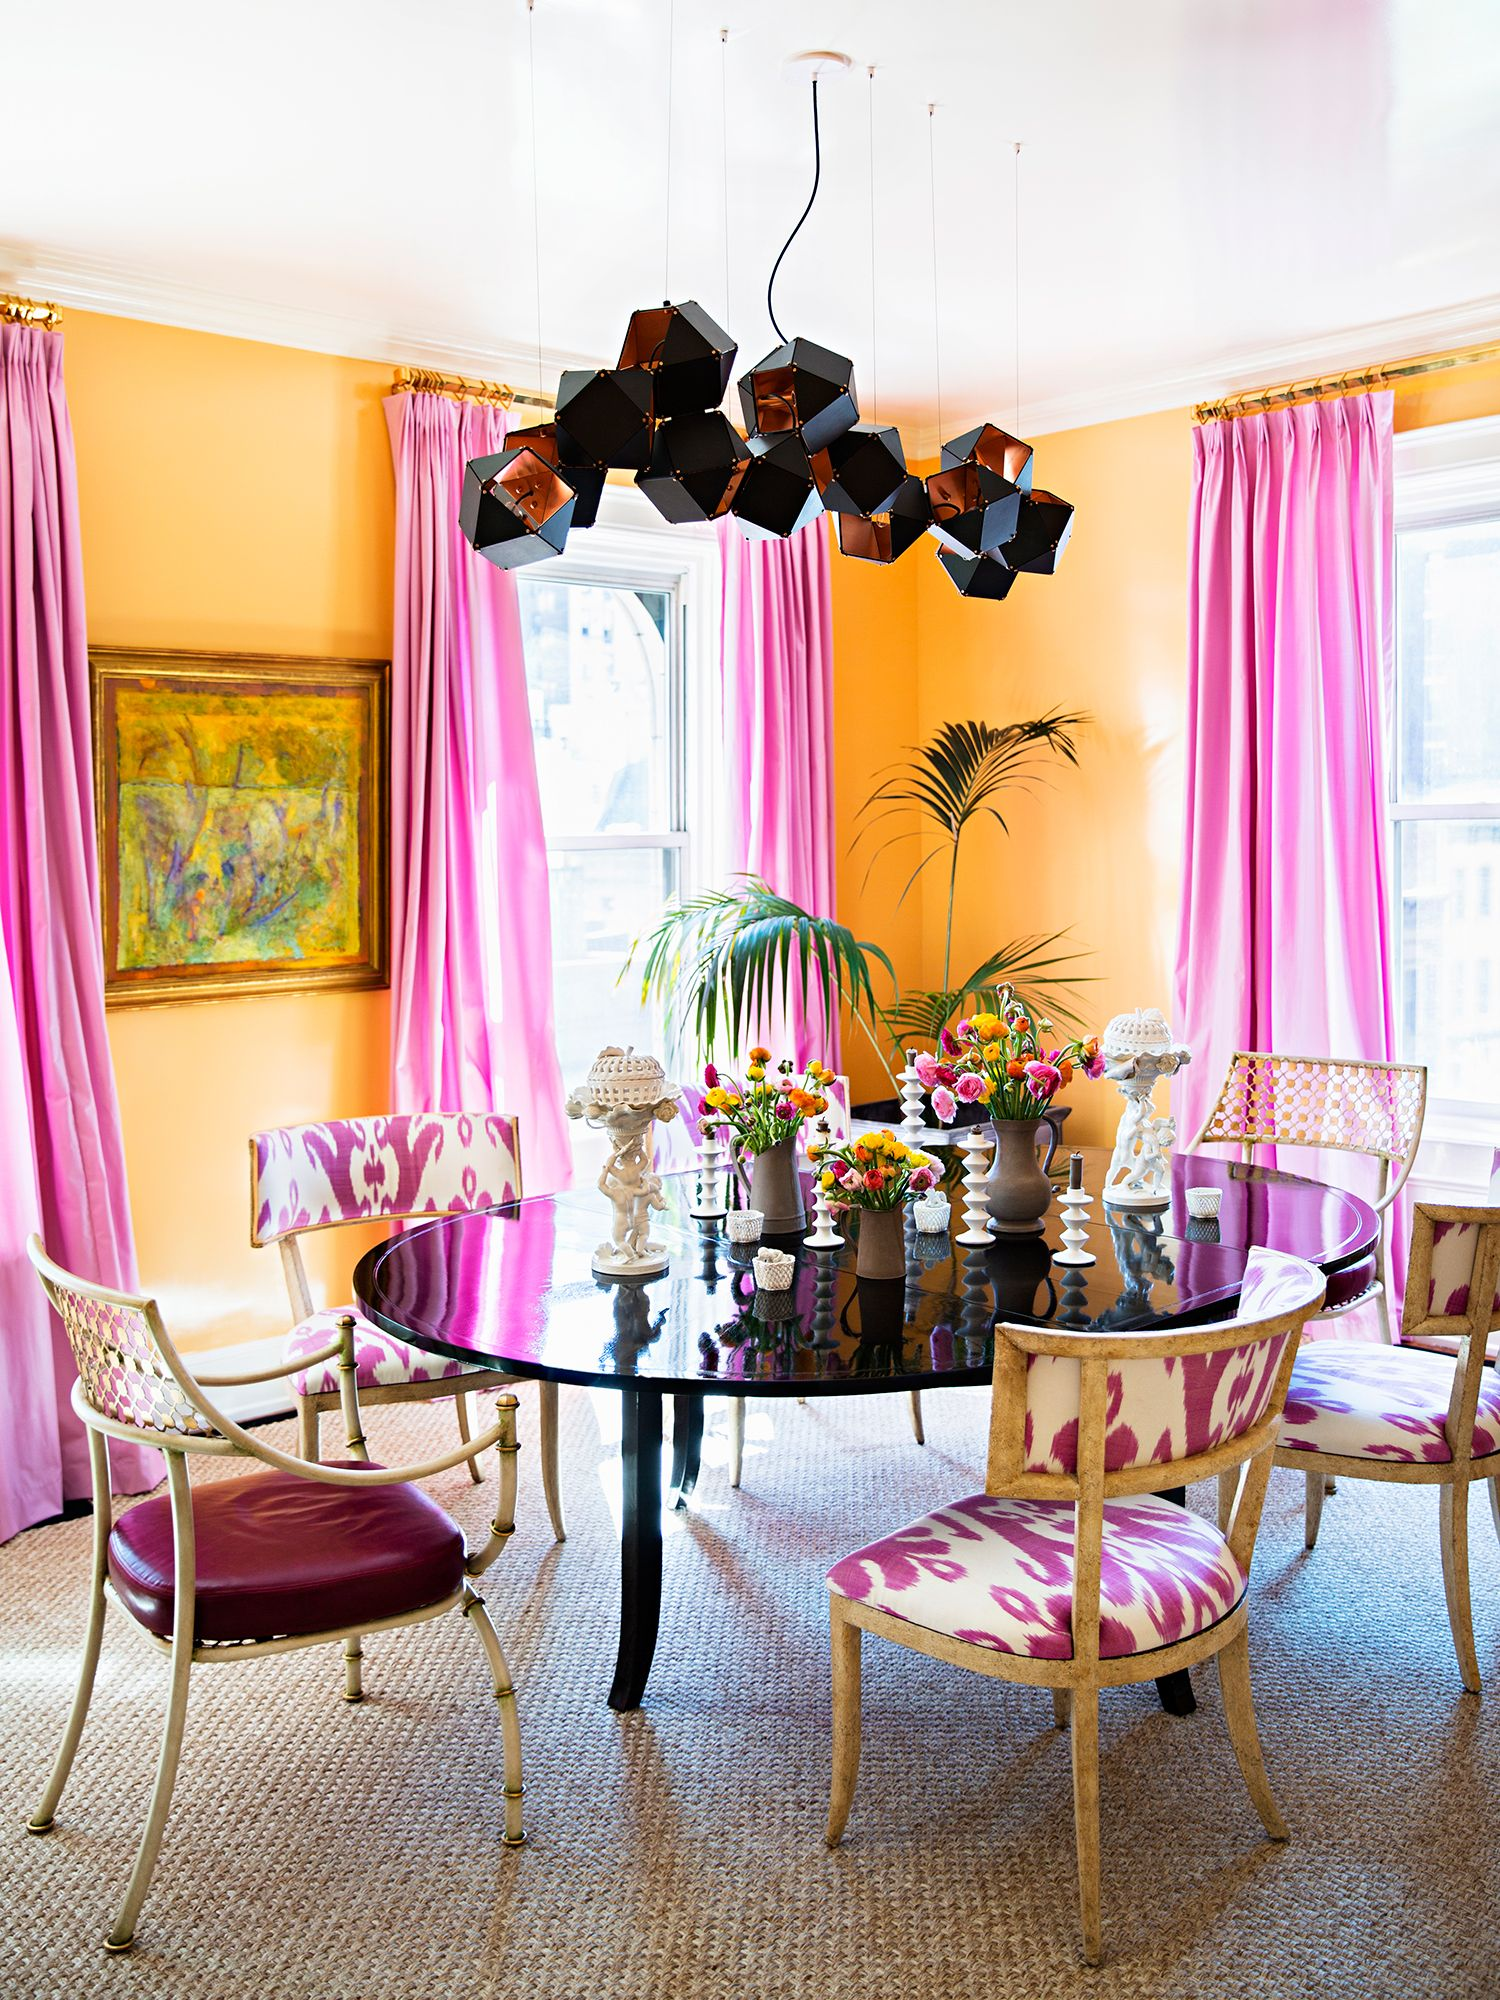 Use Bright Colors In North Facing Rooms Which Tend To Be Darker And Create Colorful Dining RoomsDining Room